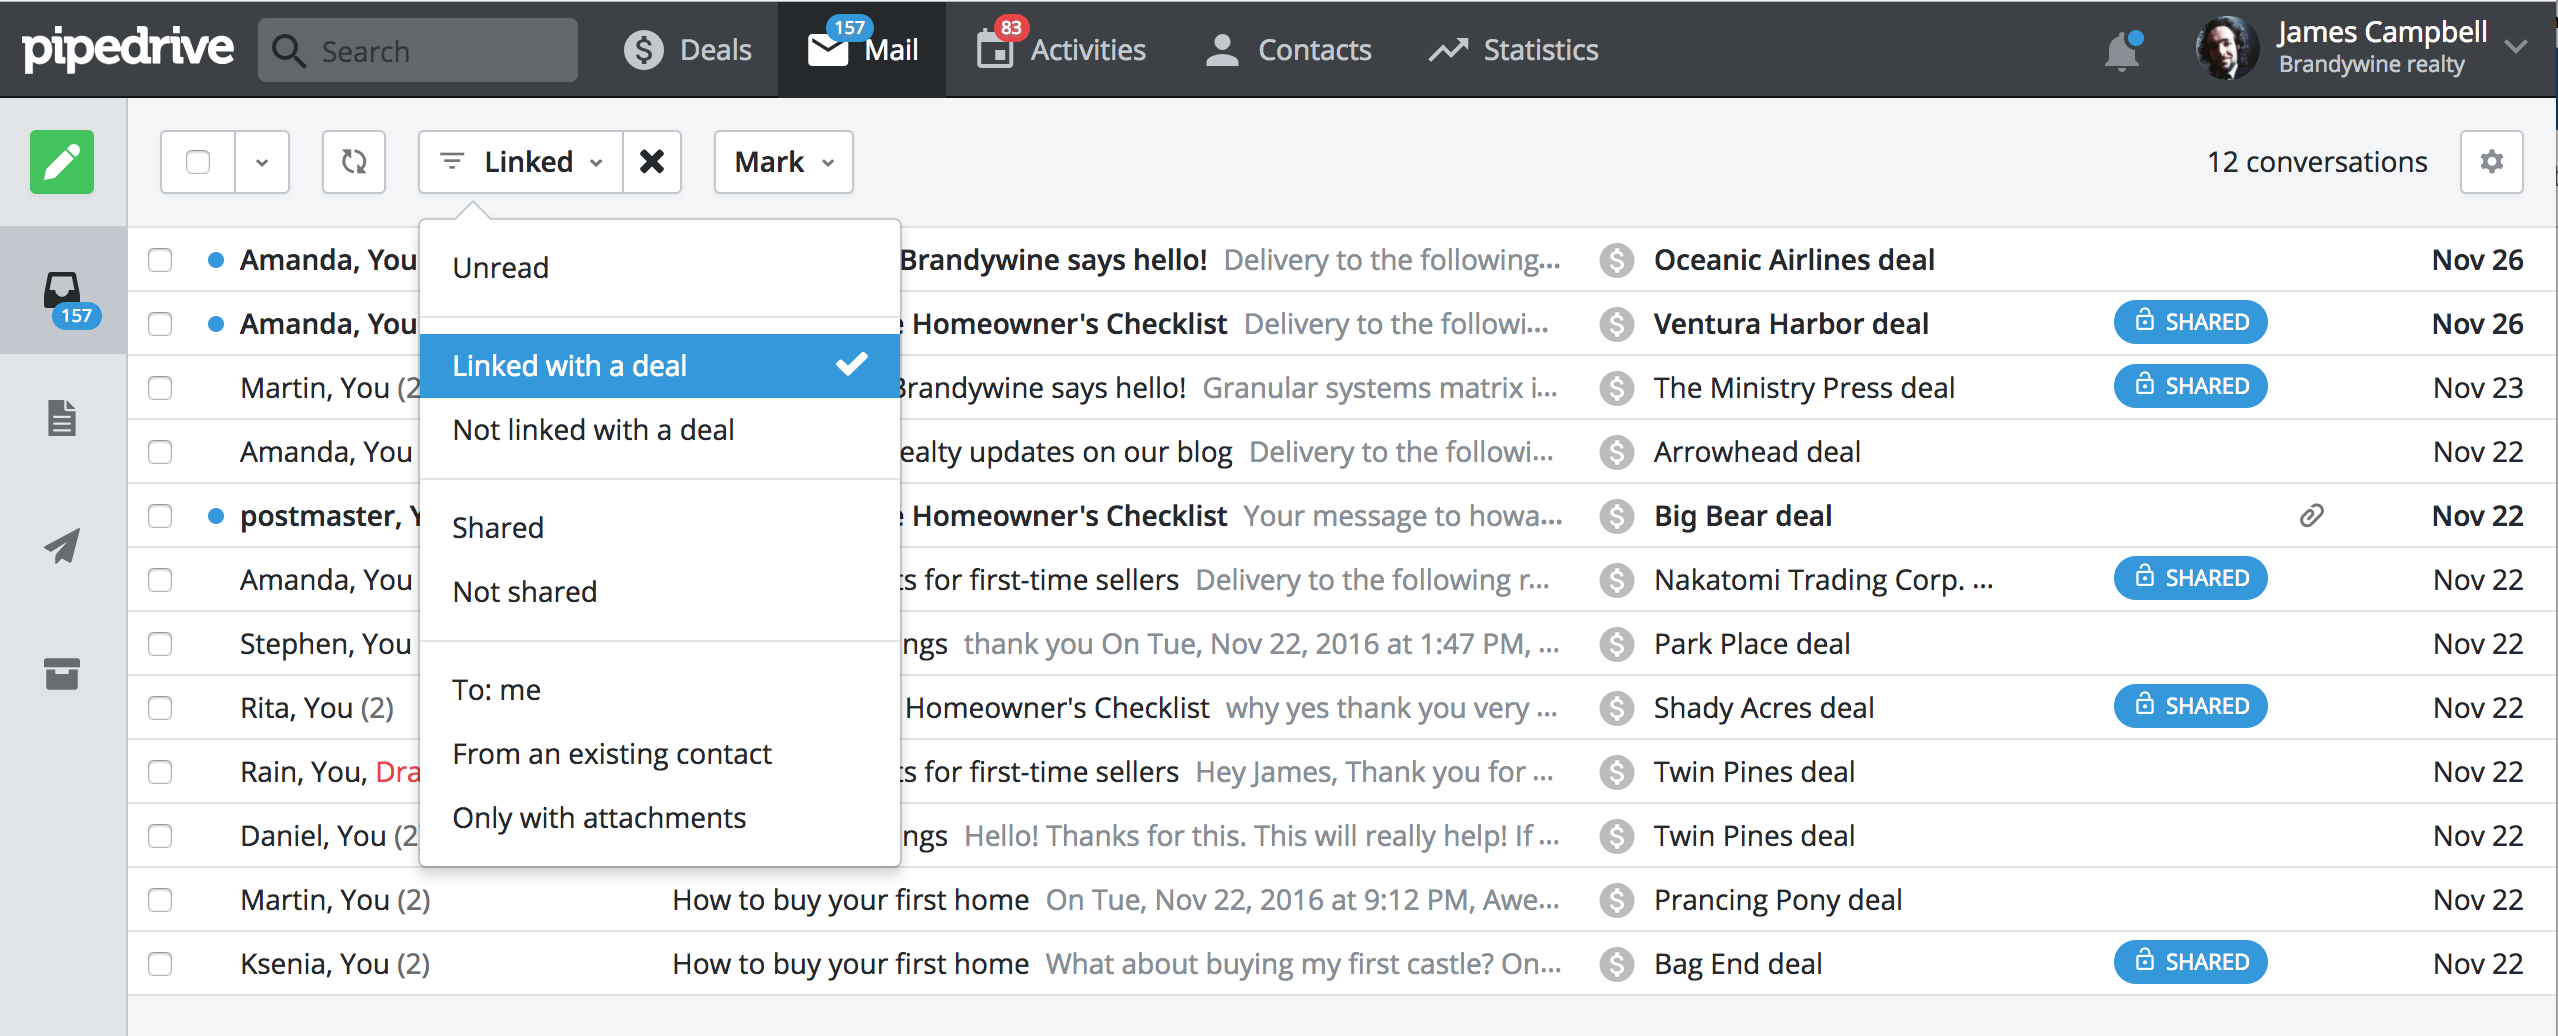 Pipedrive's easy-to-use email filters